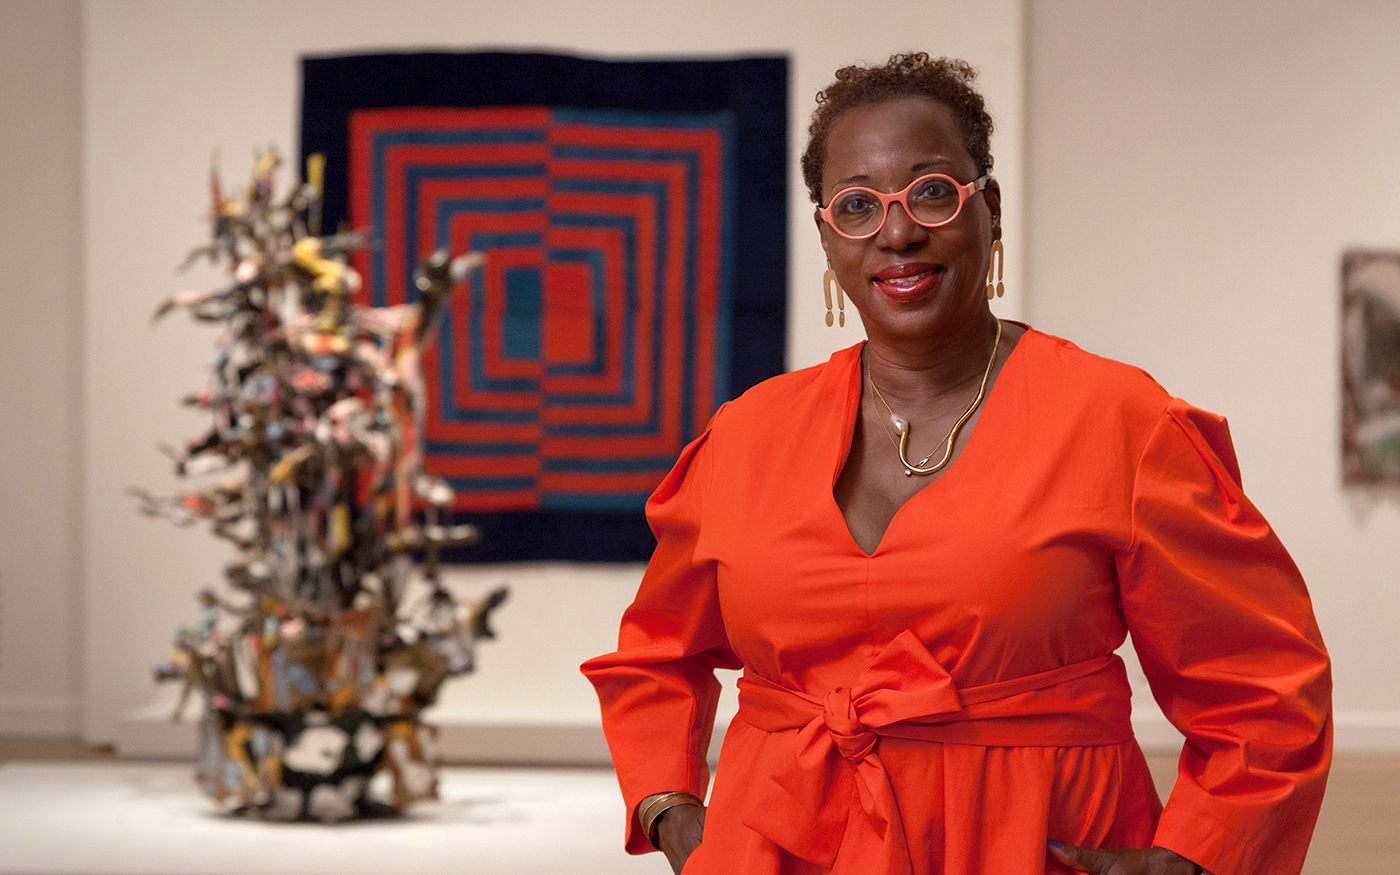 Talk | Black Artists and Assemblage: From Folk Art to Conceptual Art Practices with Valerie Cassel Oliver